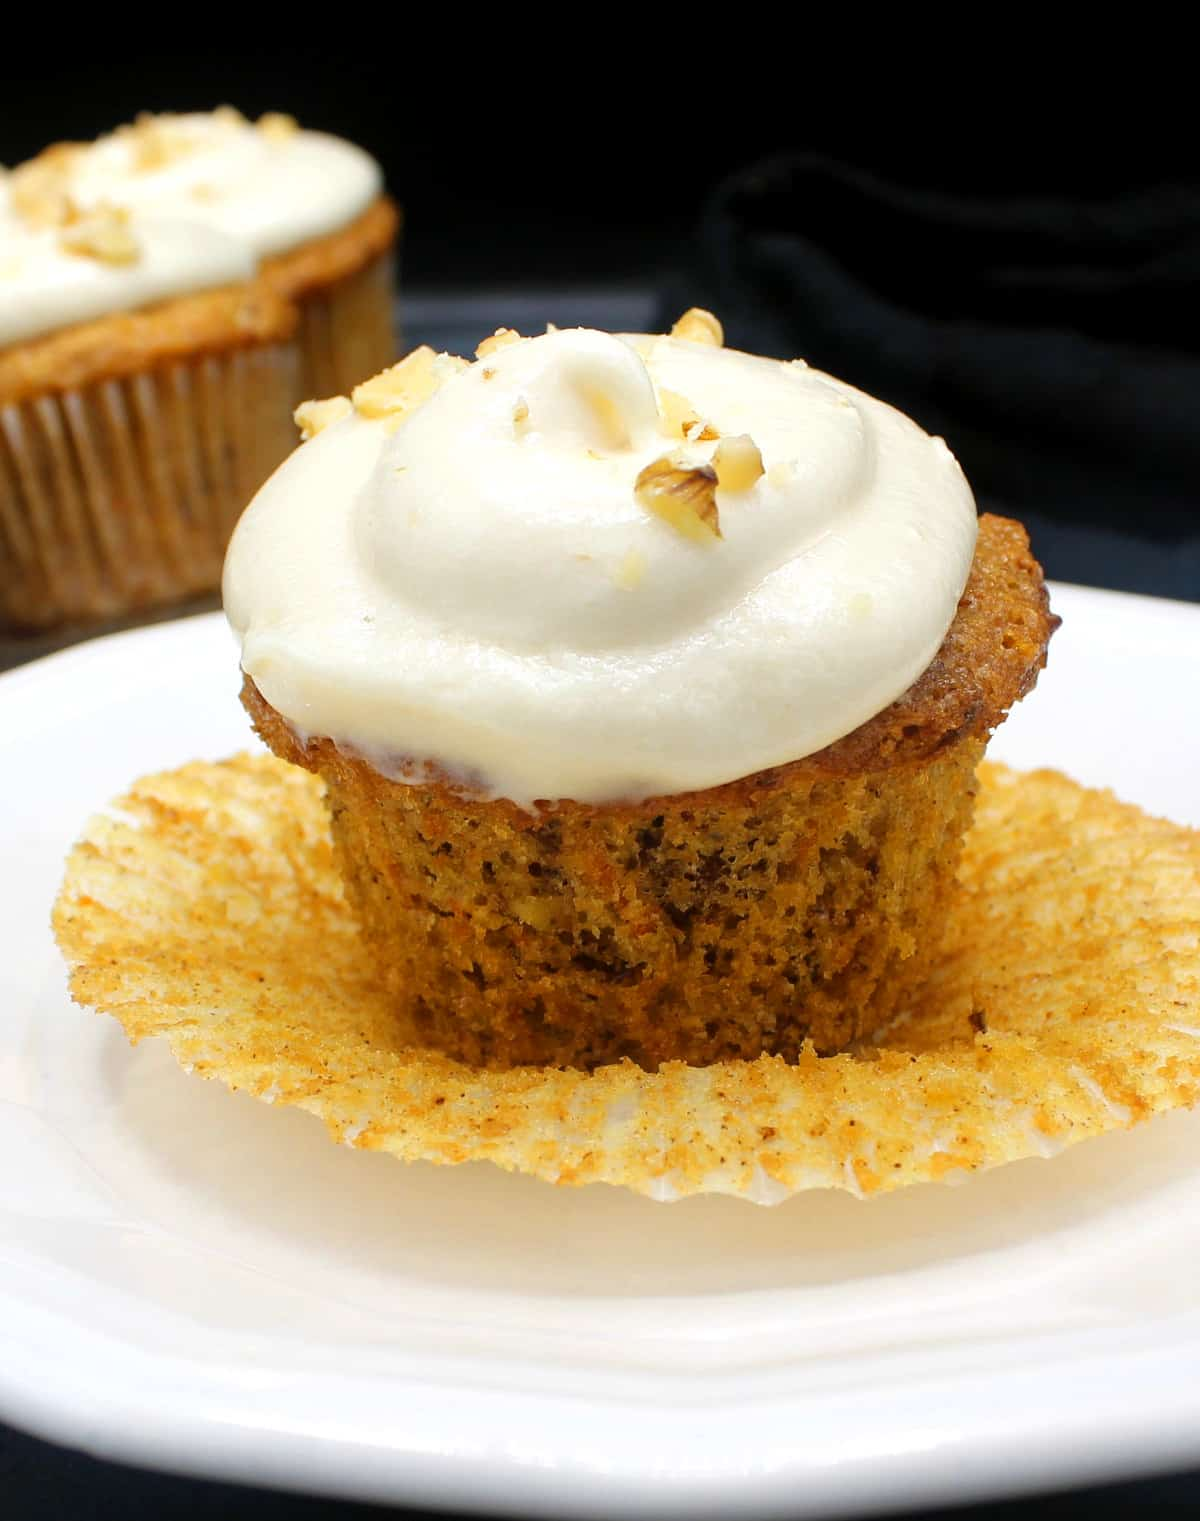 A single vegan carrot cupcake with cream cheese frosting and walnuts on top in a white plate with more cupcakes in the background.